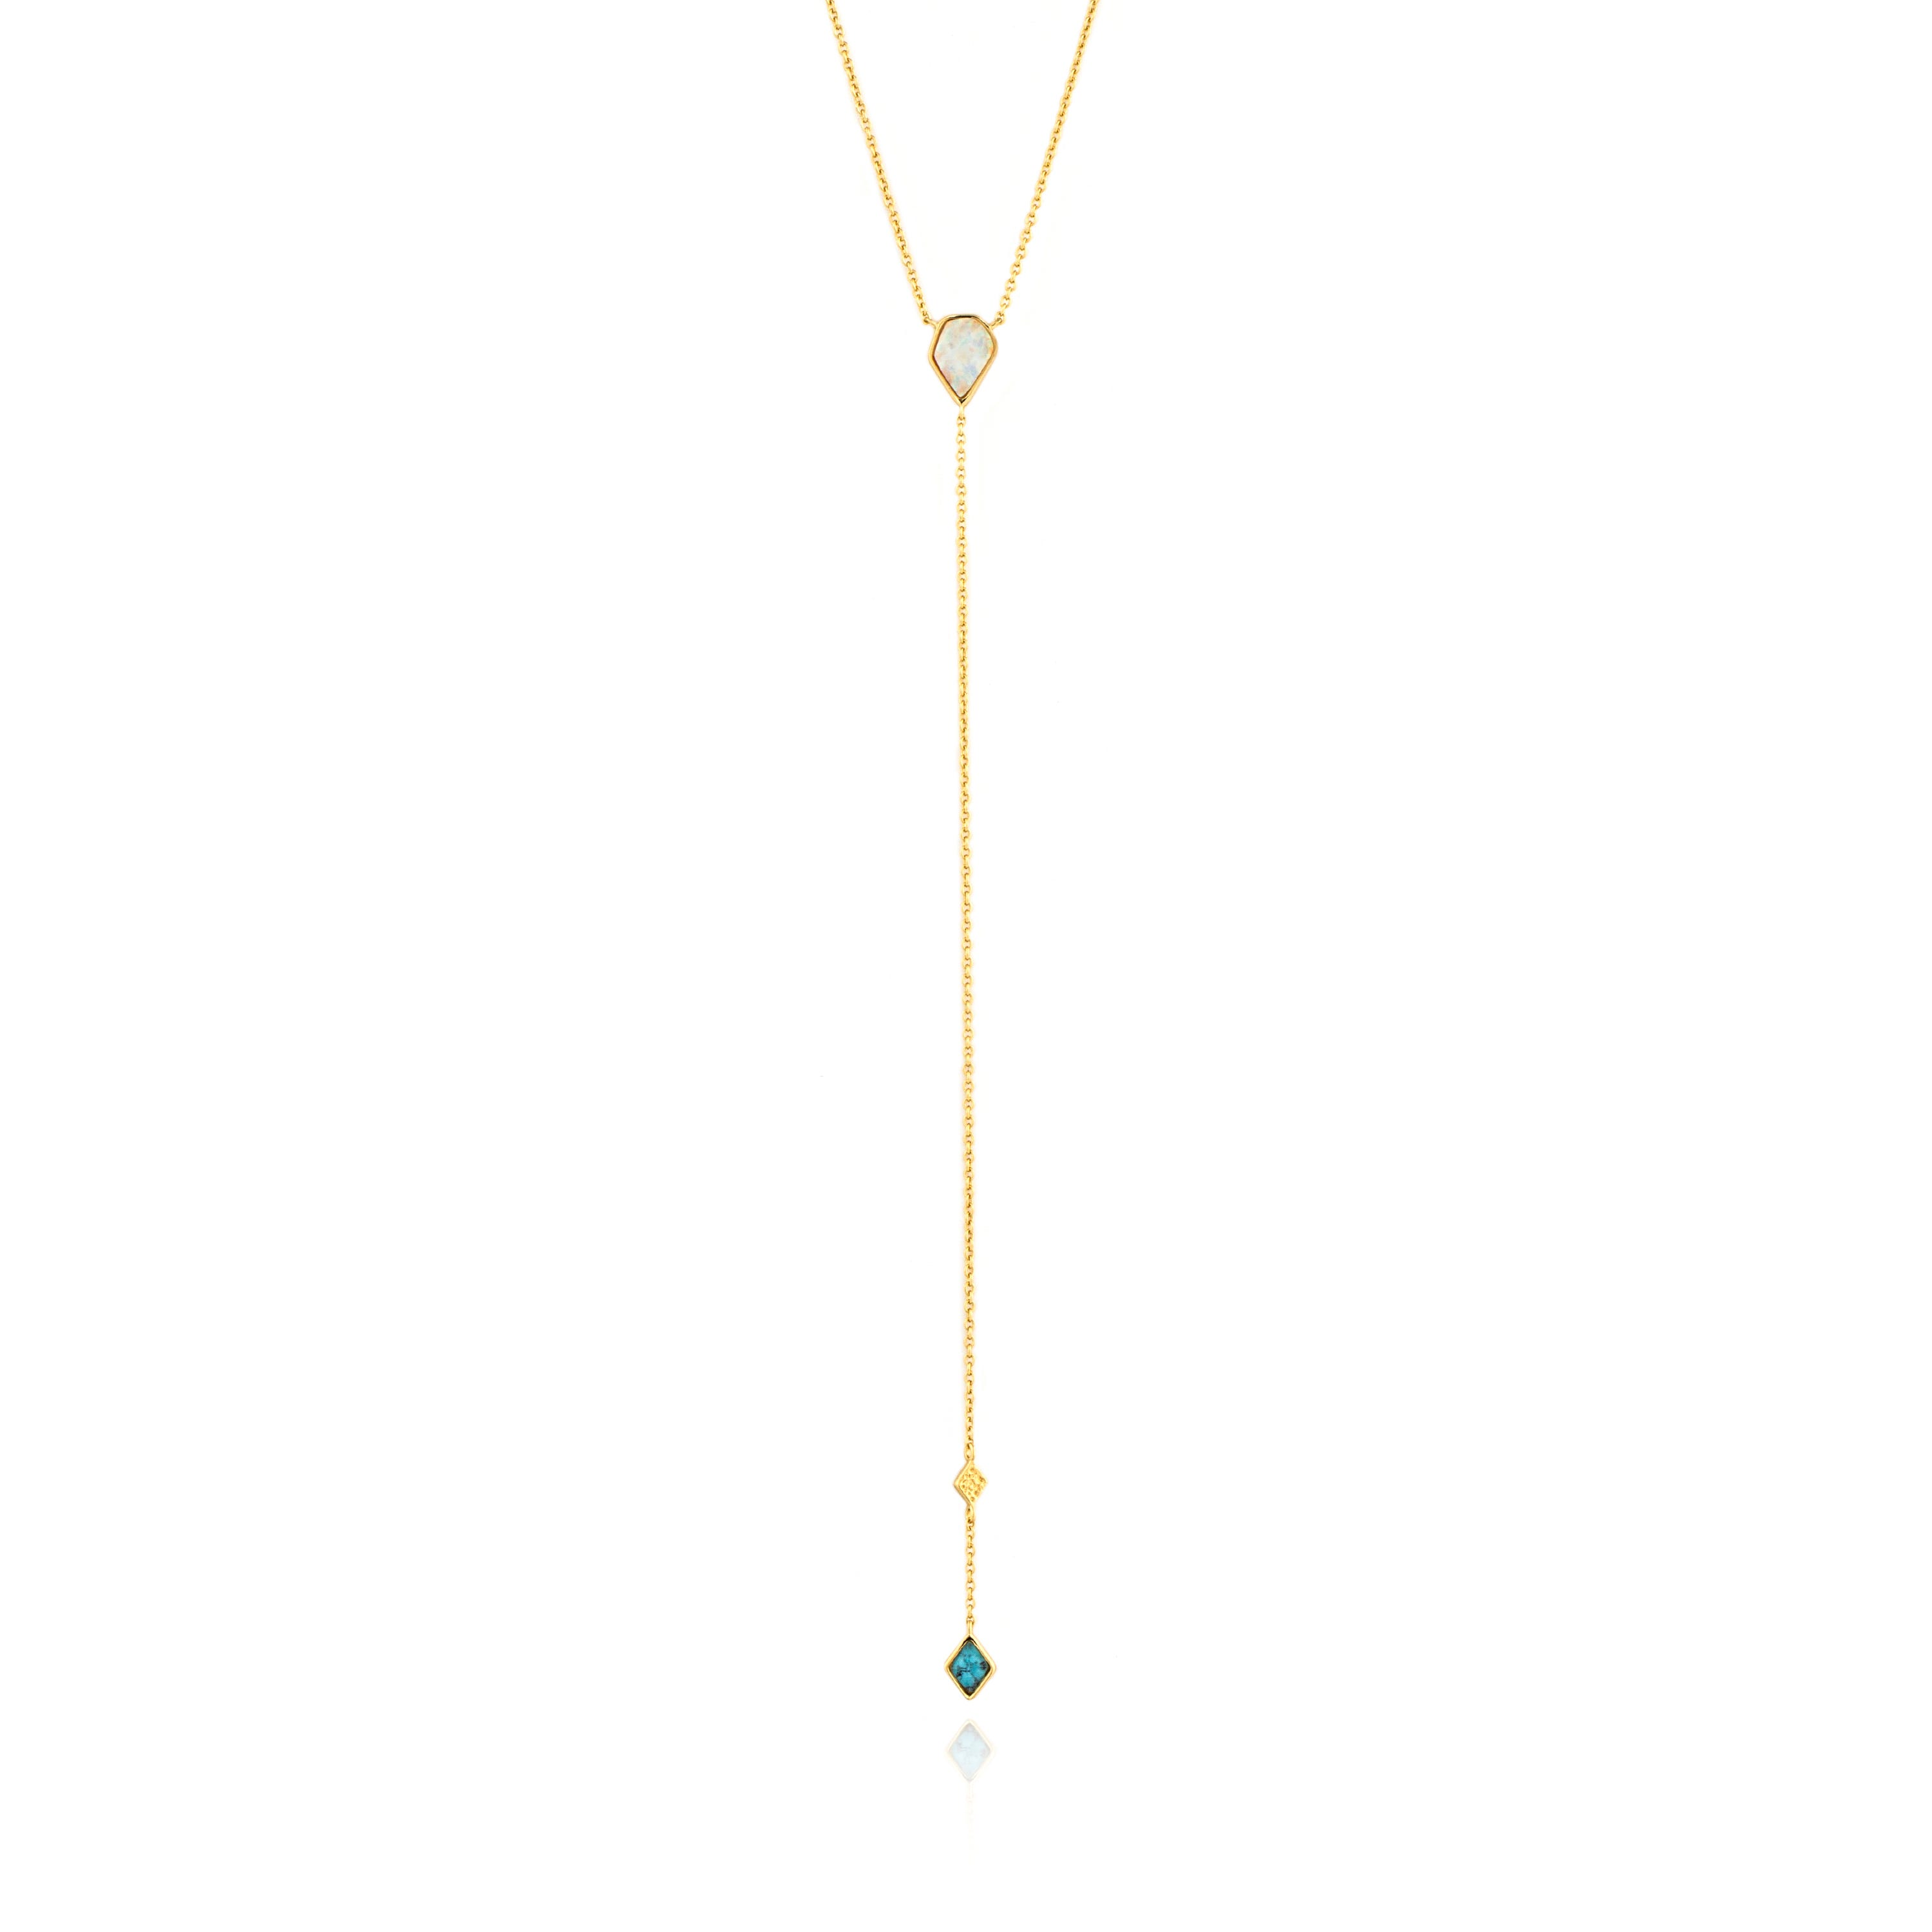 Turquoise & Opal Y Necklace in Sterling Silver/Gold Plated